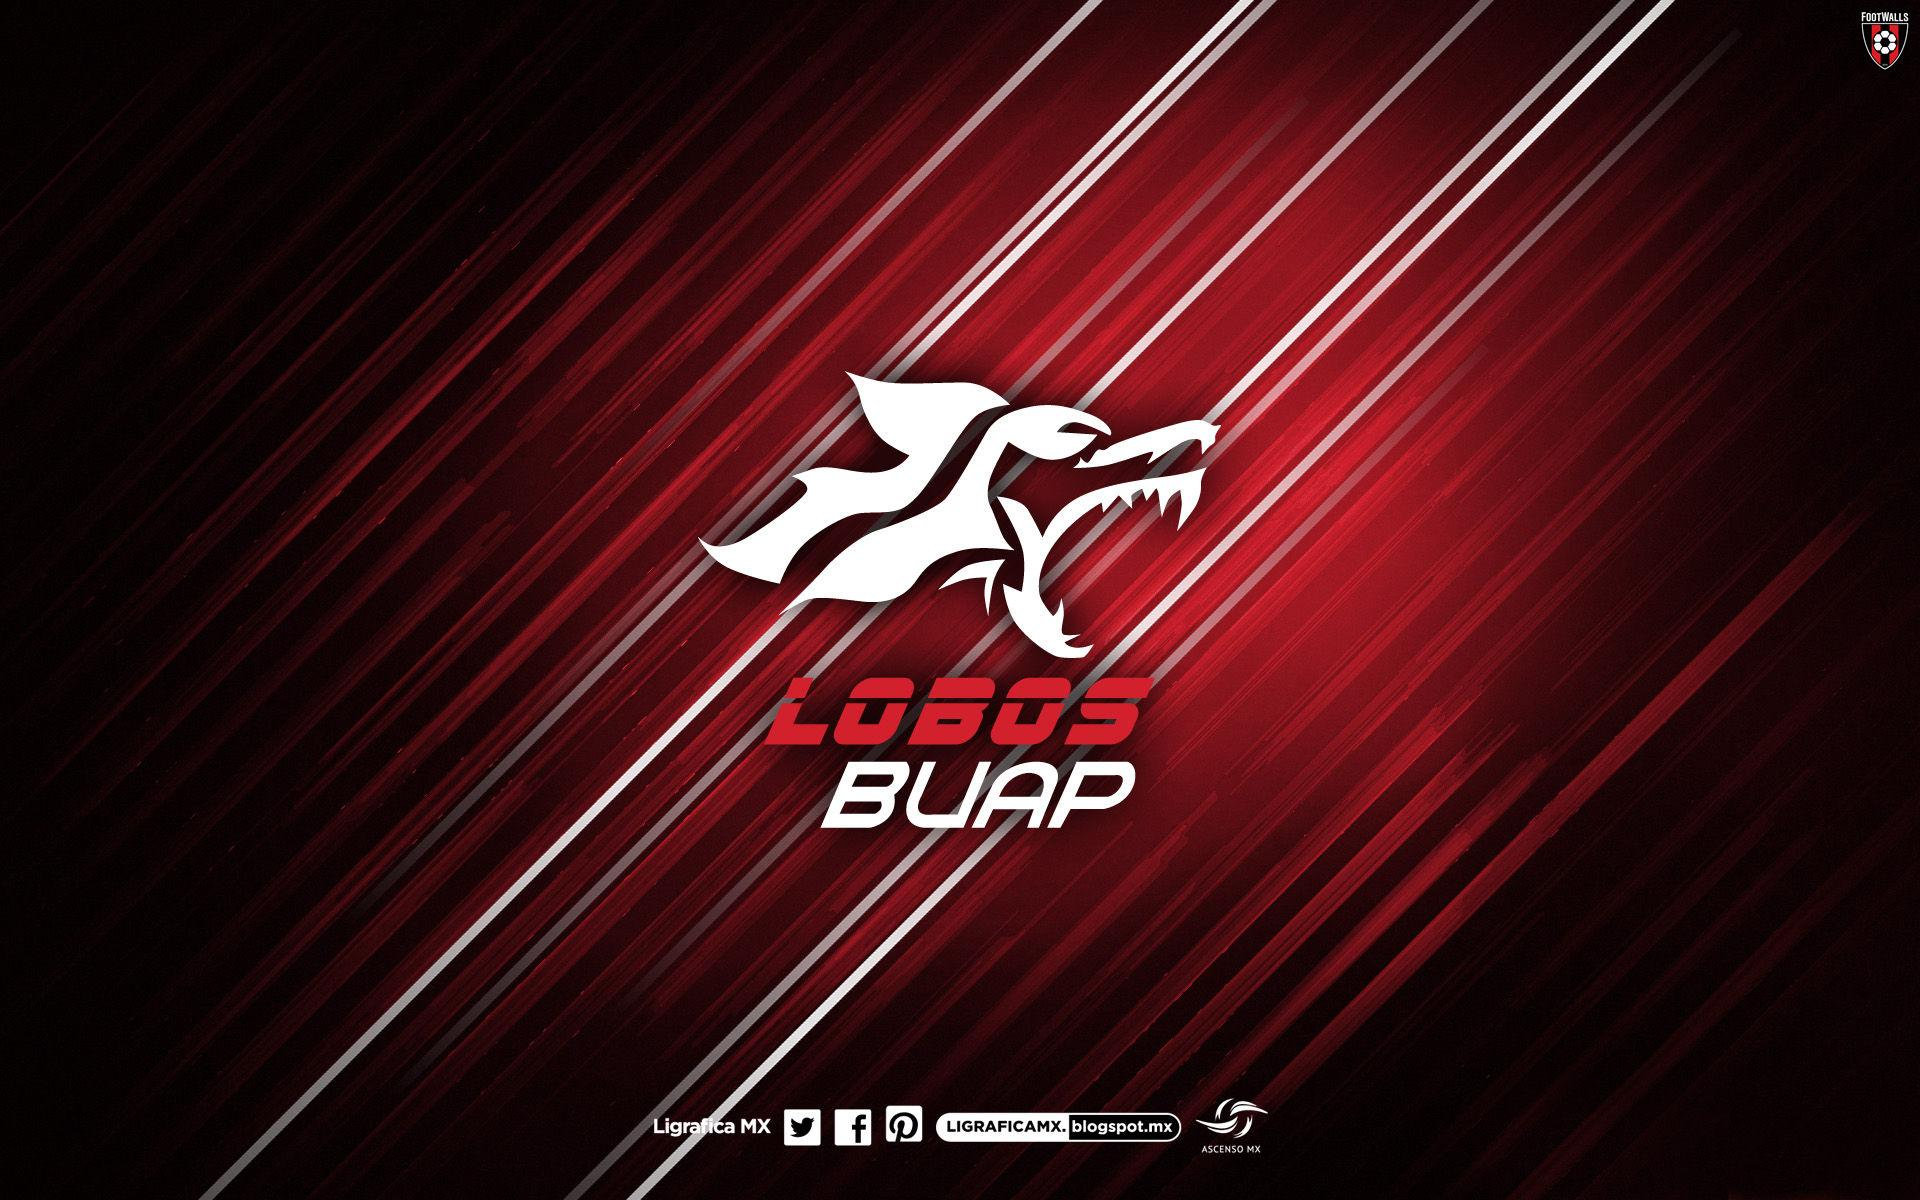 Lobos B U A P Wallpapers